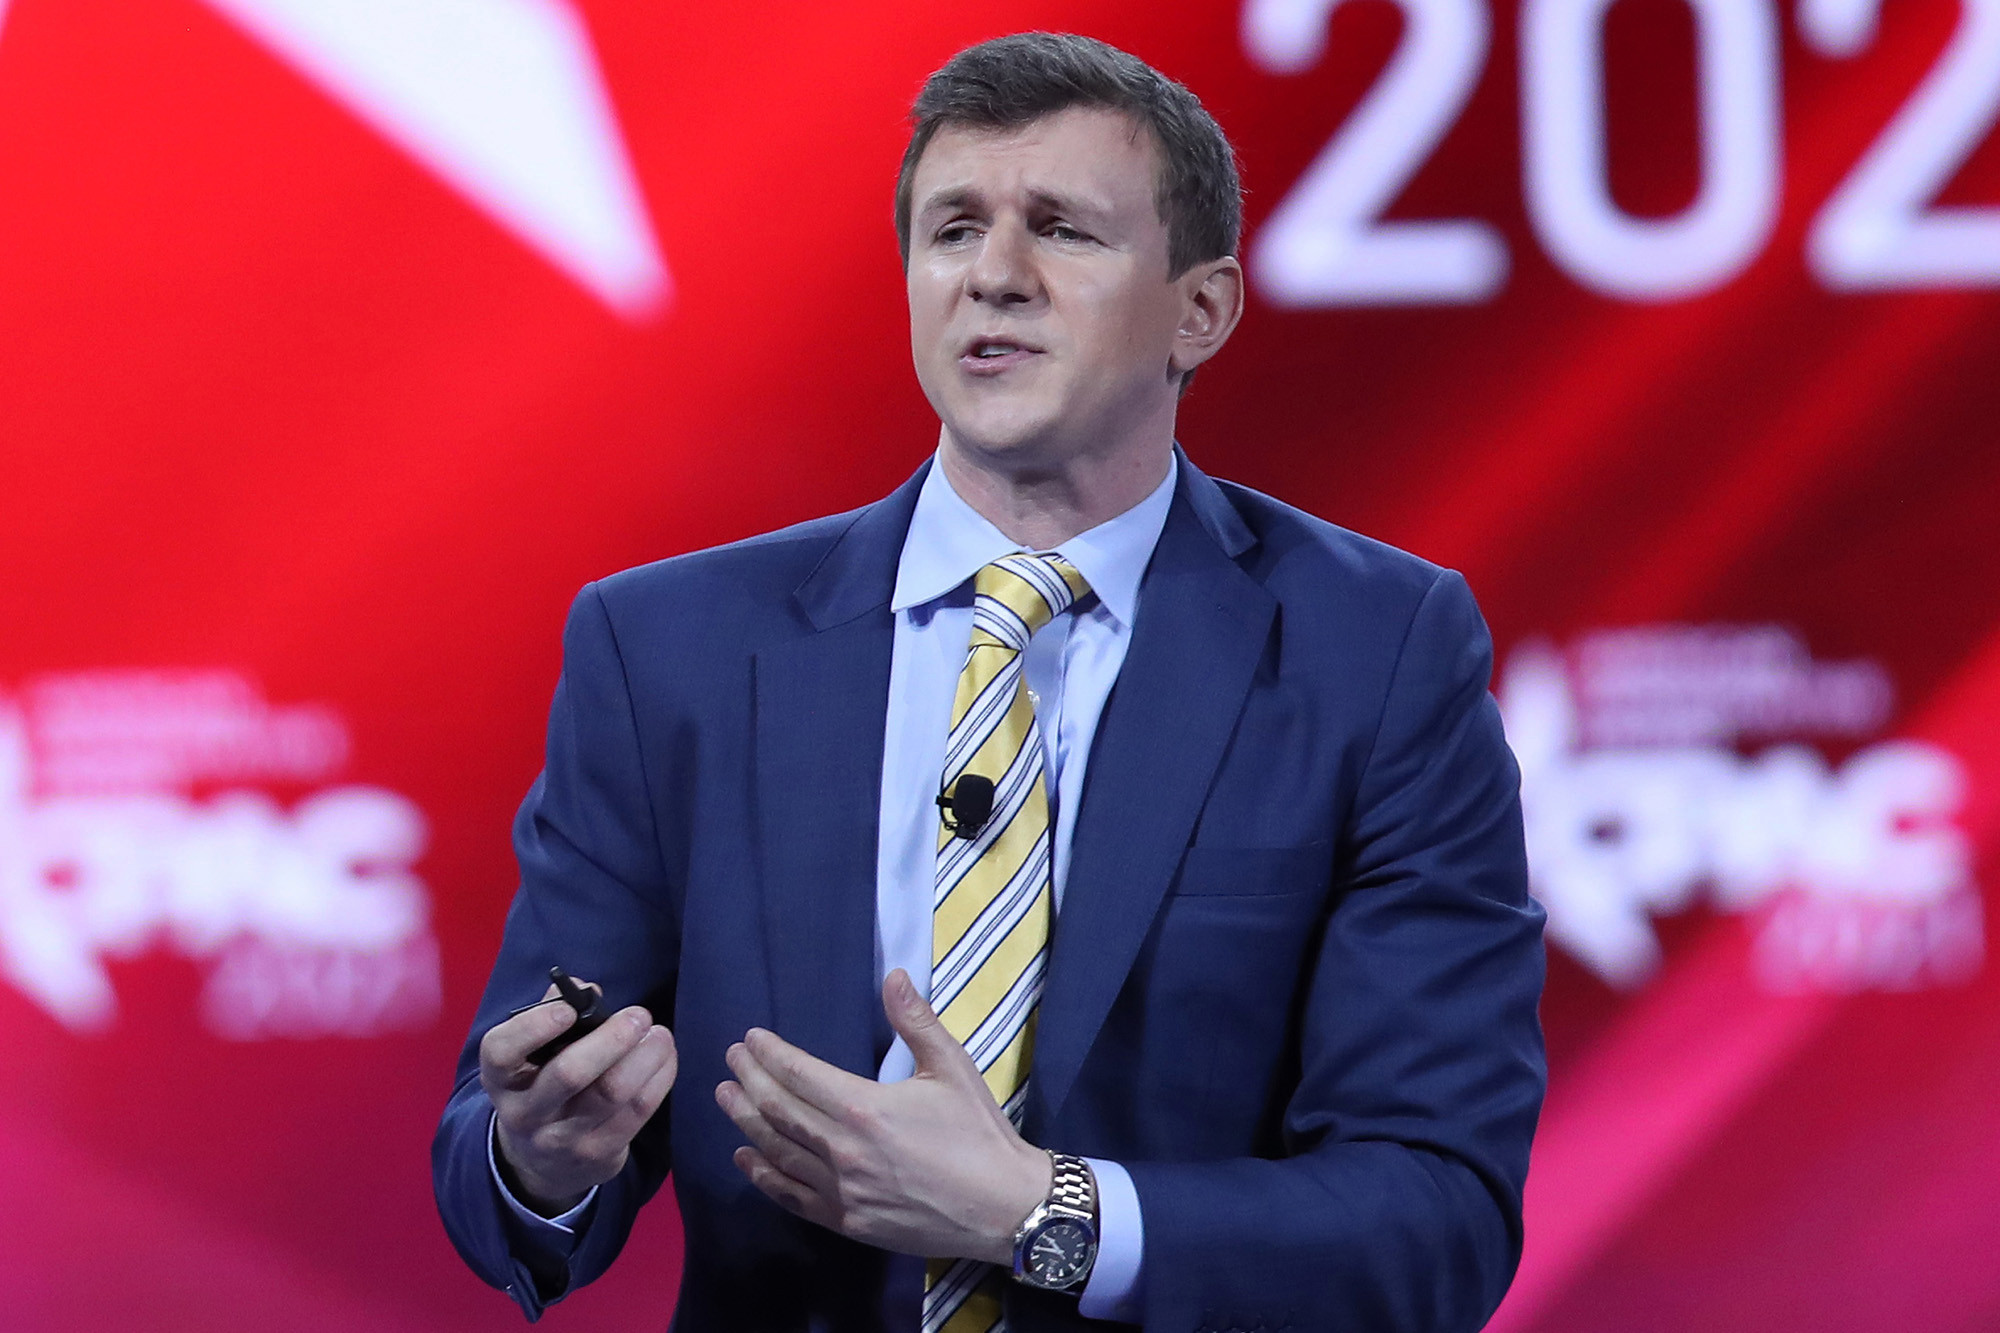 James O'Keefe's Twitter suspended one day after CNN exposé